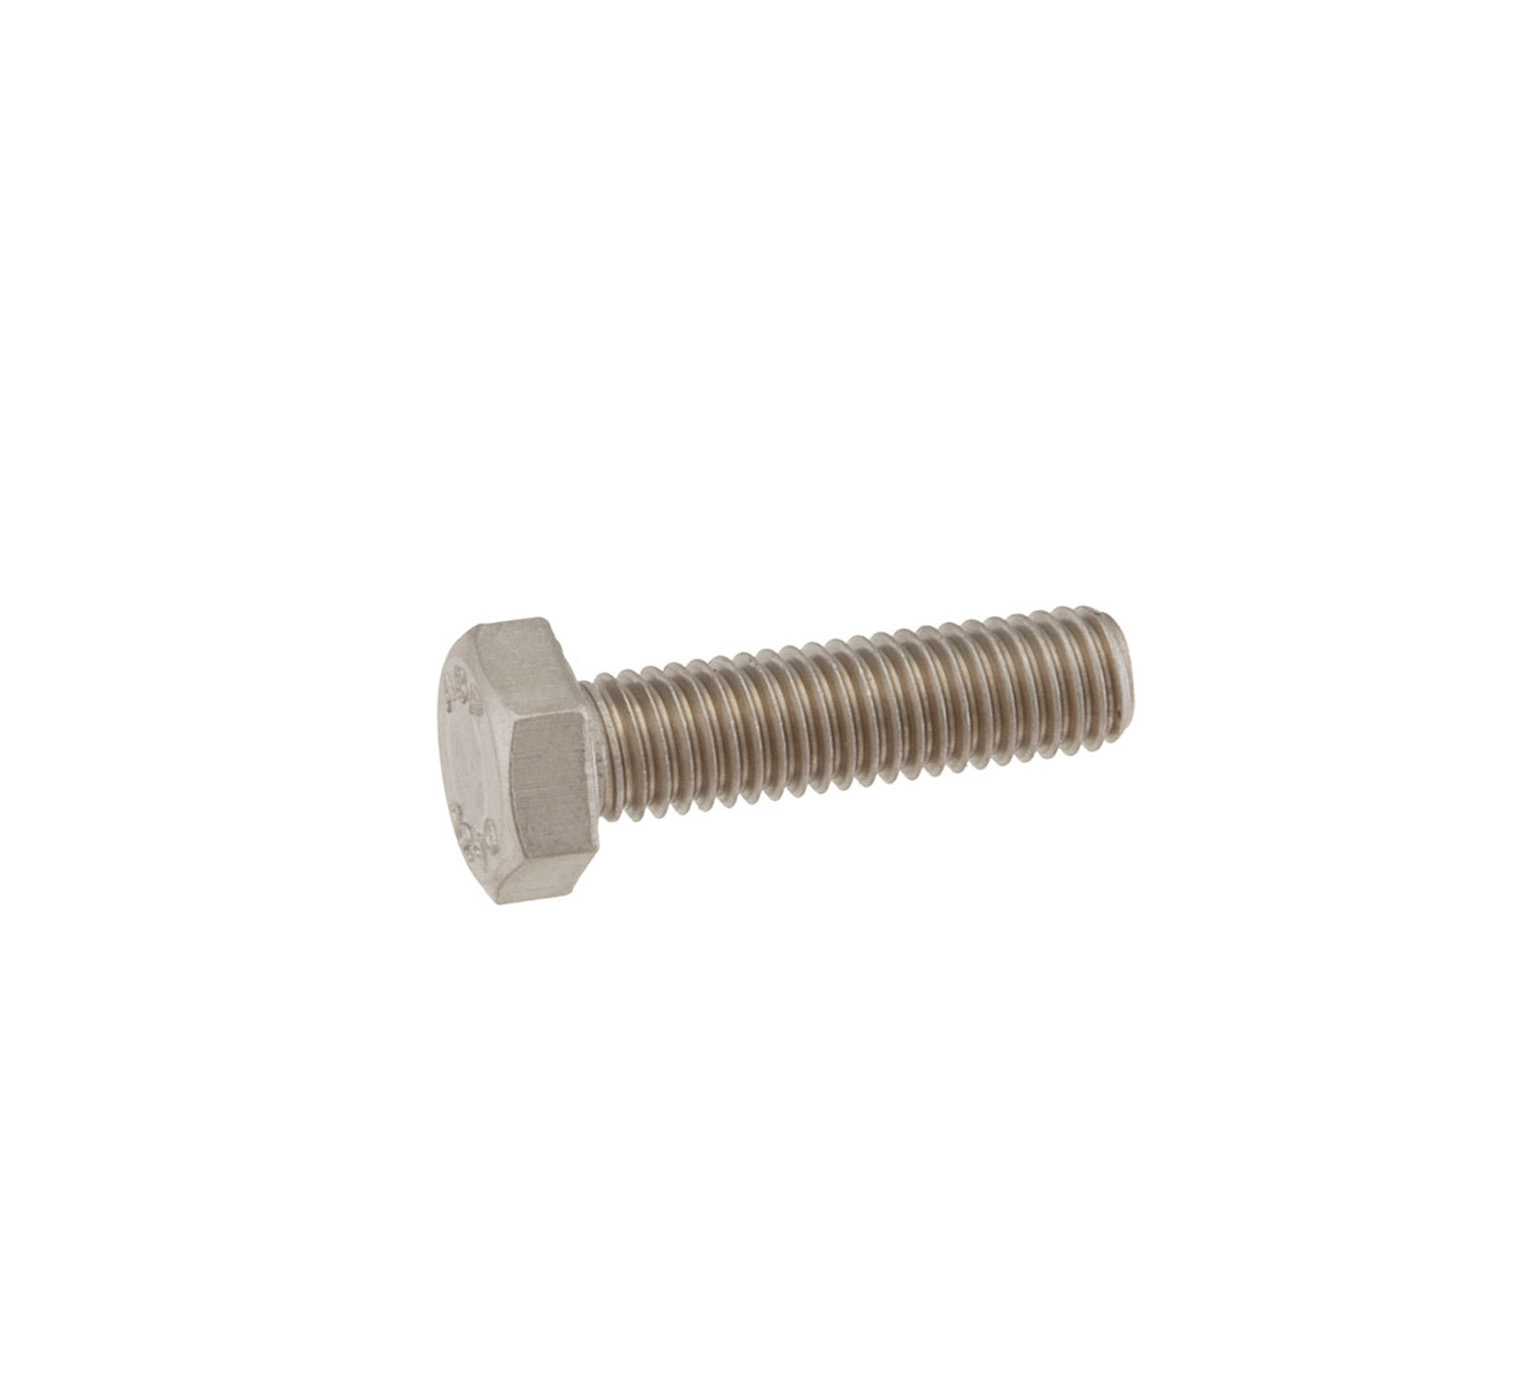 09011 Stainless Steel Hex Screw - M8 Thread x 1.15 in alt 1